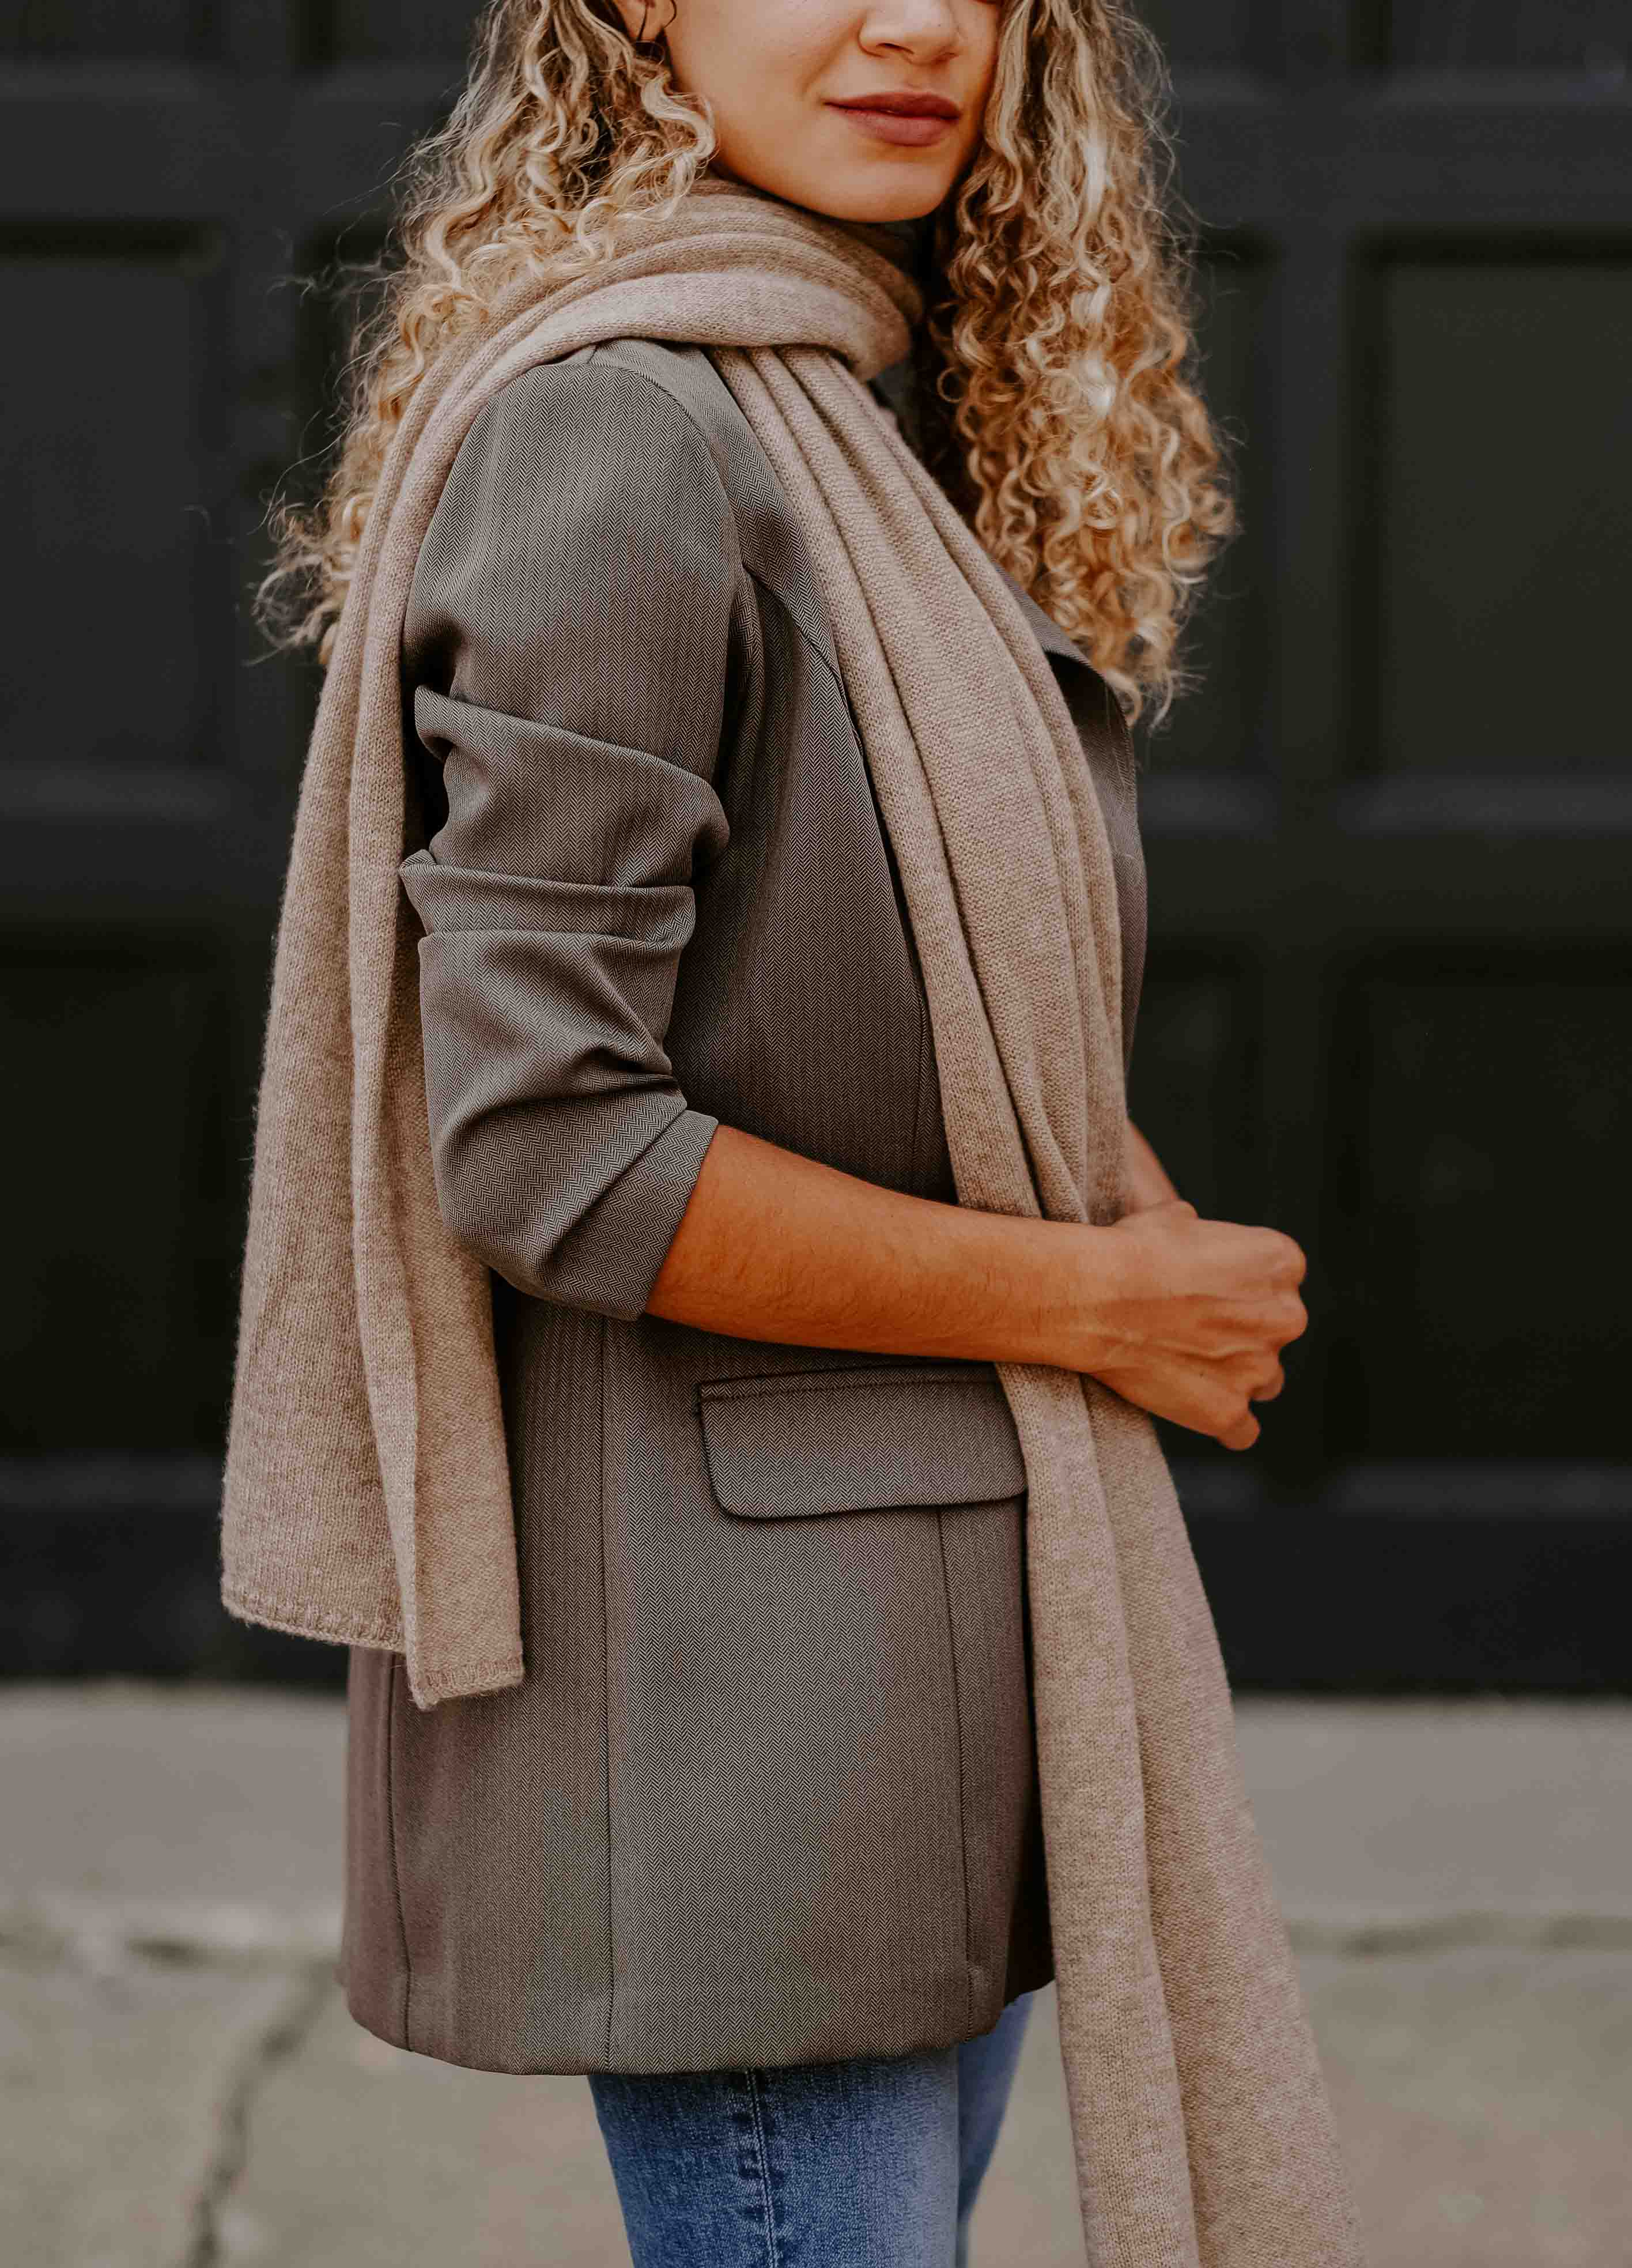 cashmere scarf outfit